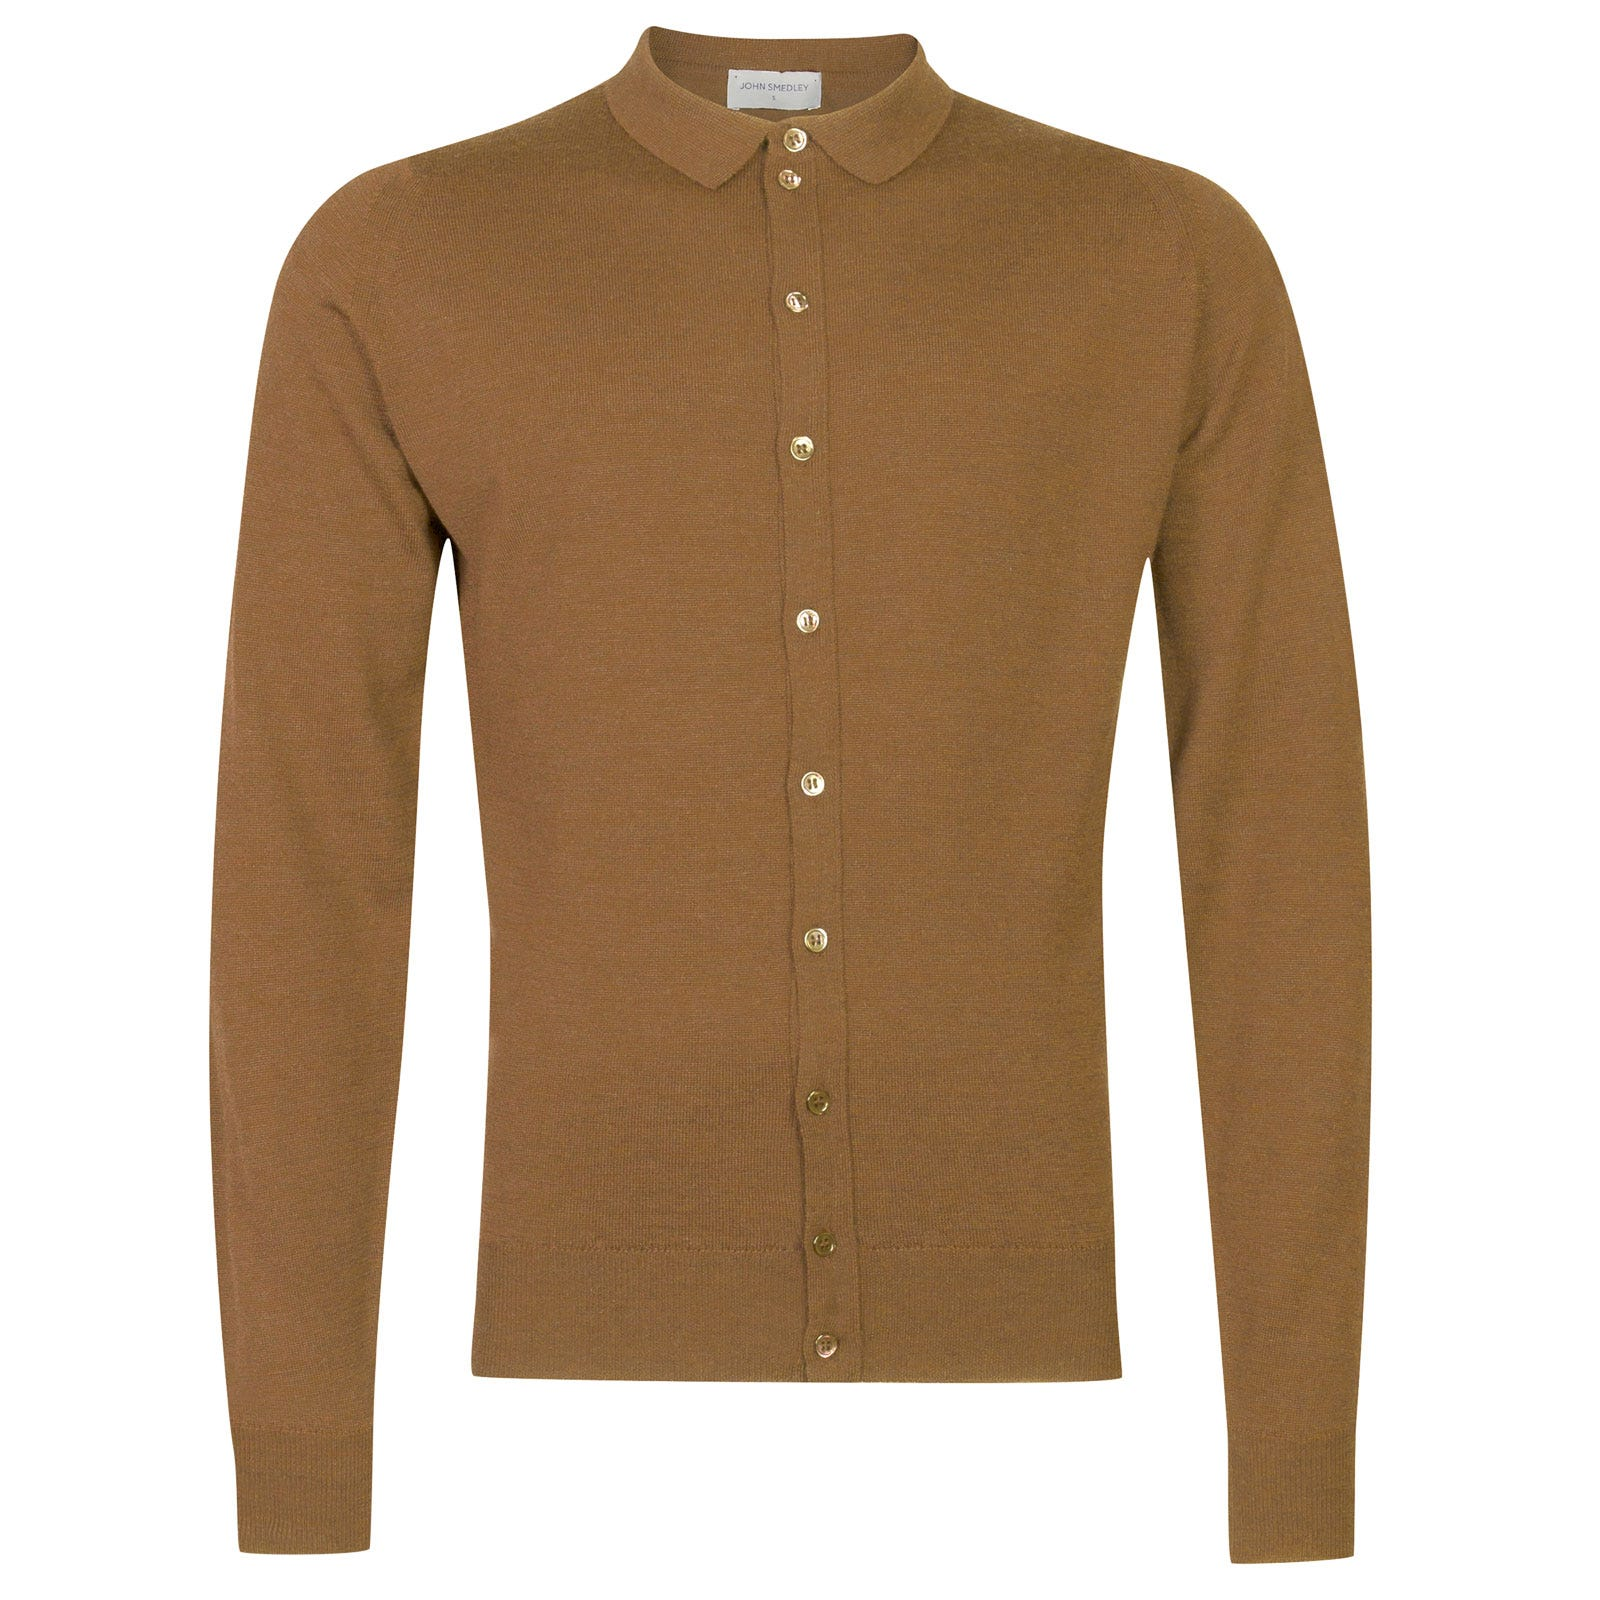 John Smedley parwish Merino Wool Shirt in Camel-XL